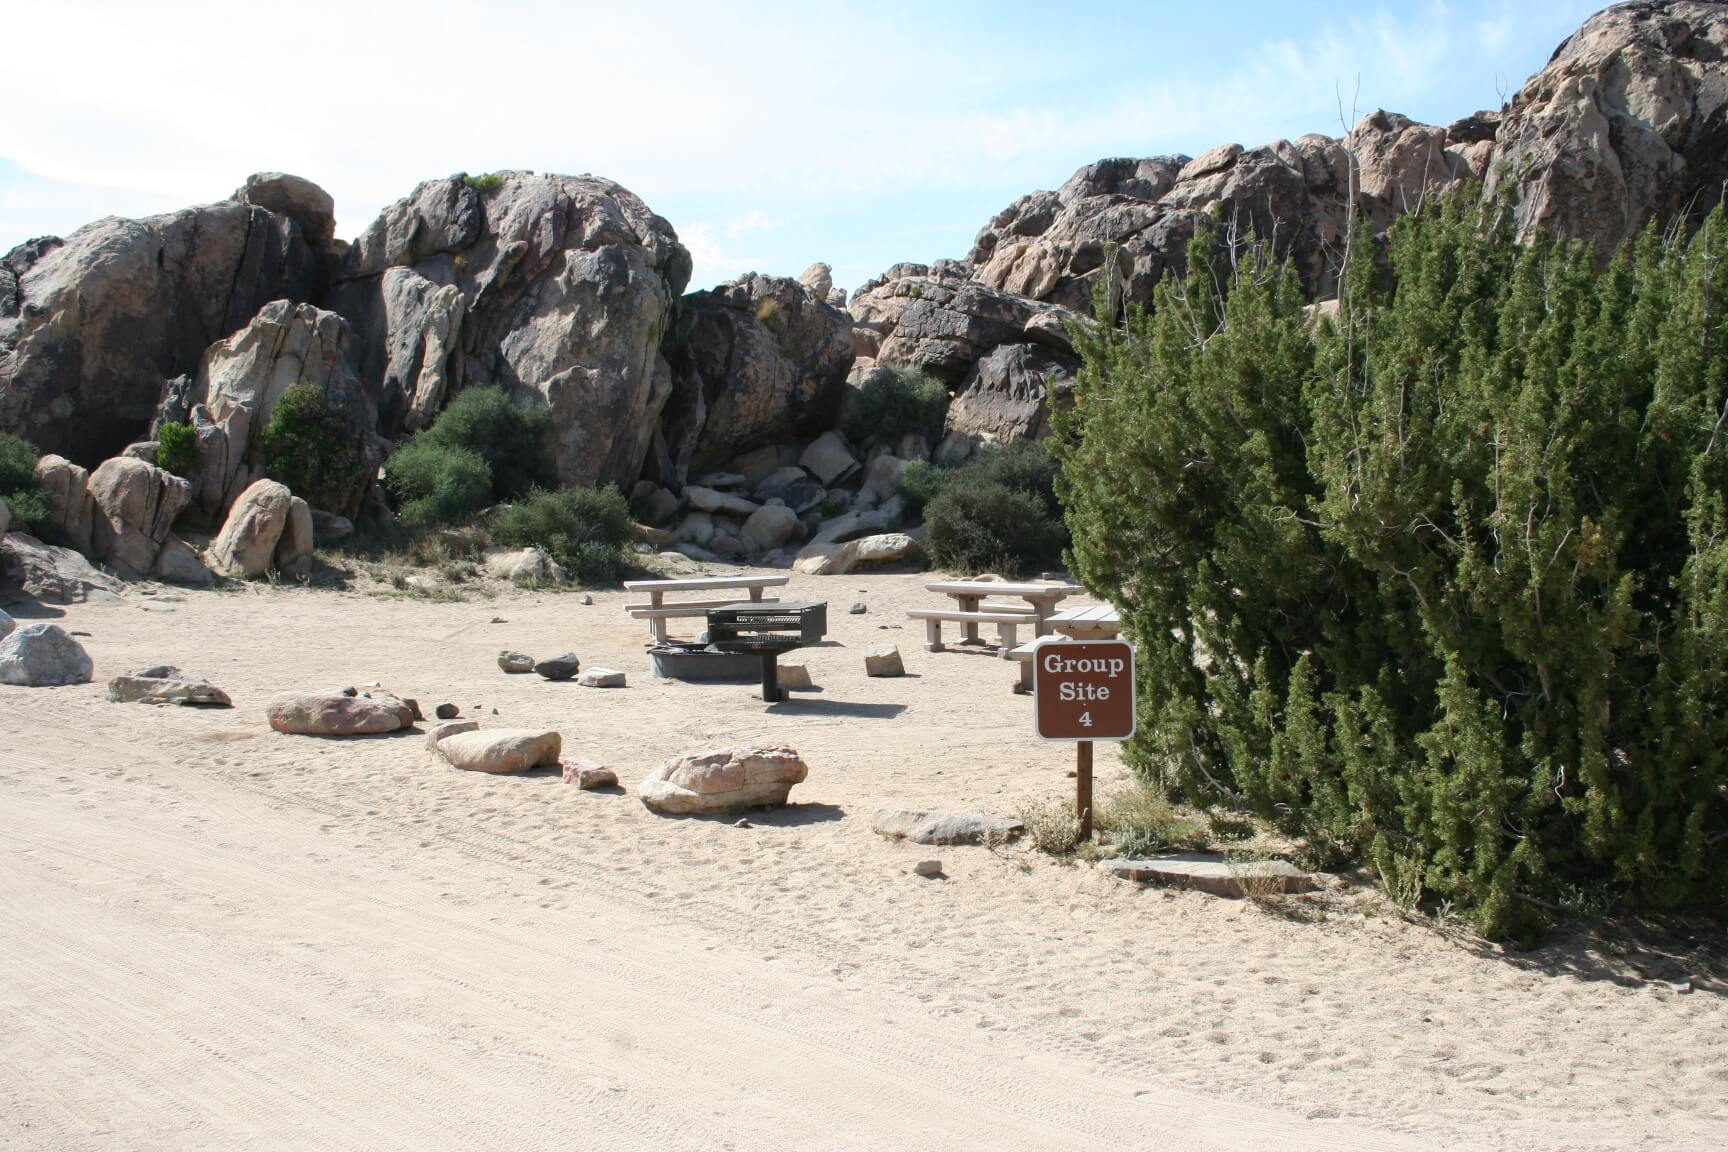 Joshua Tree National Park's Best Campsites Sheep Pass Group #4